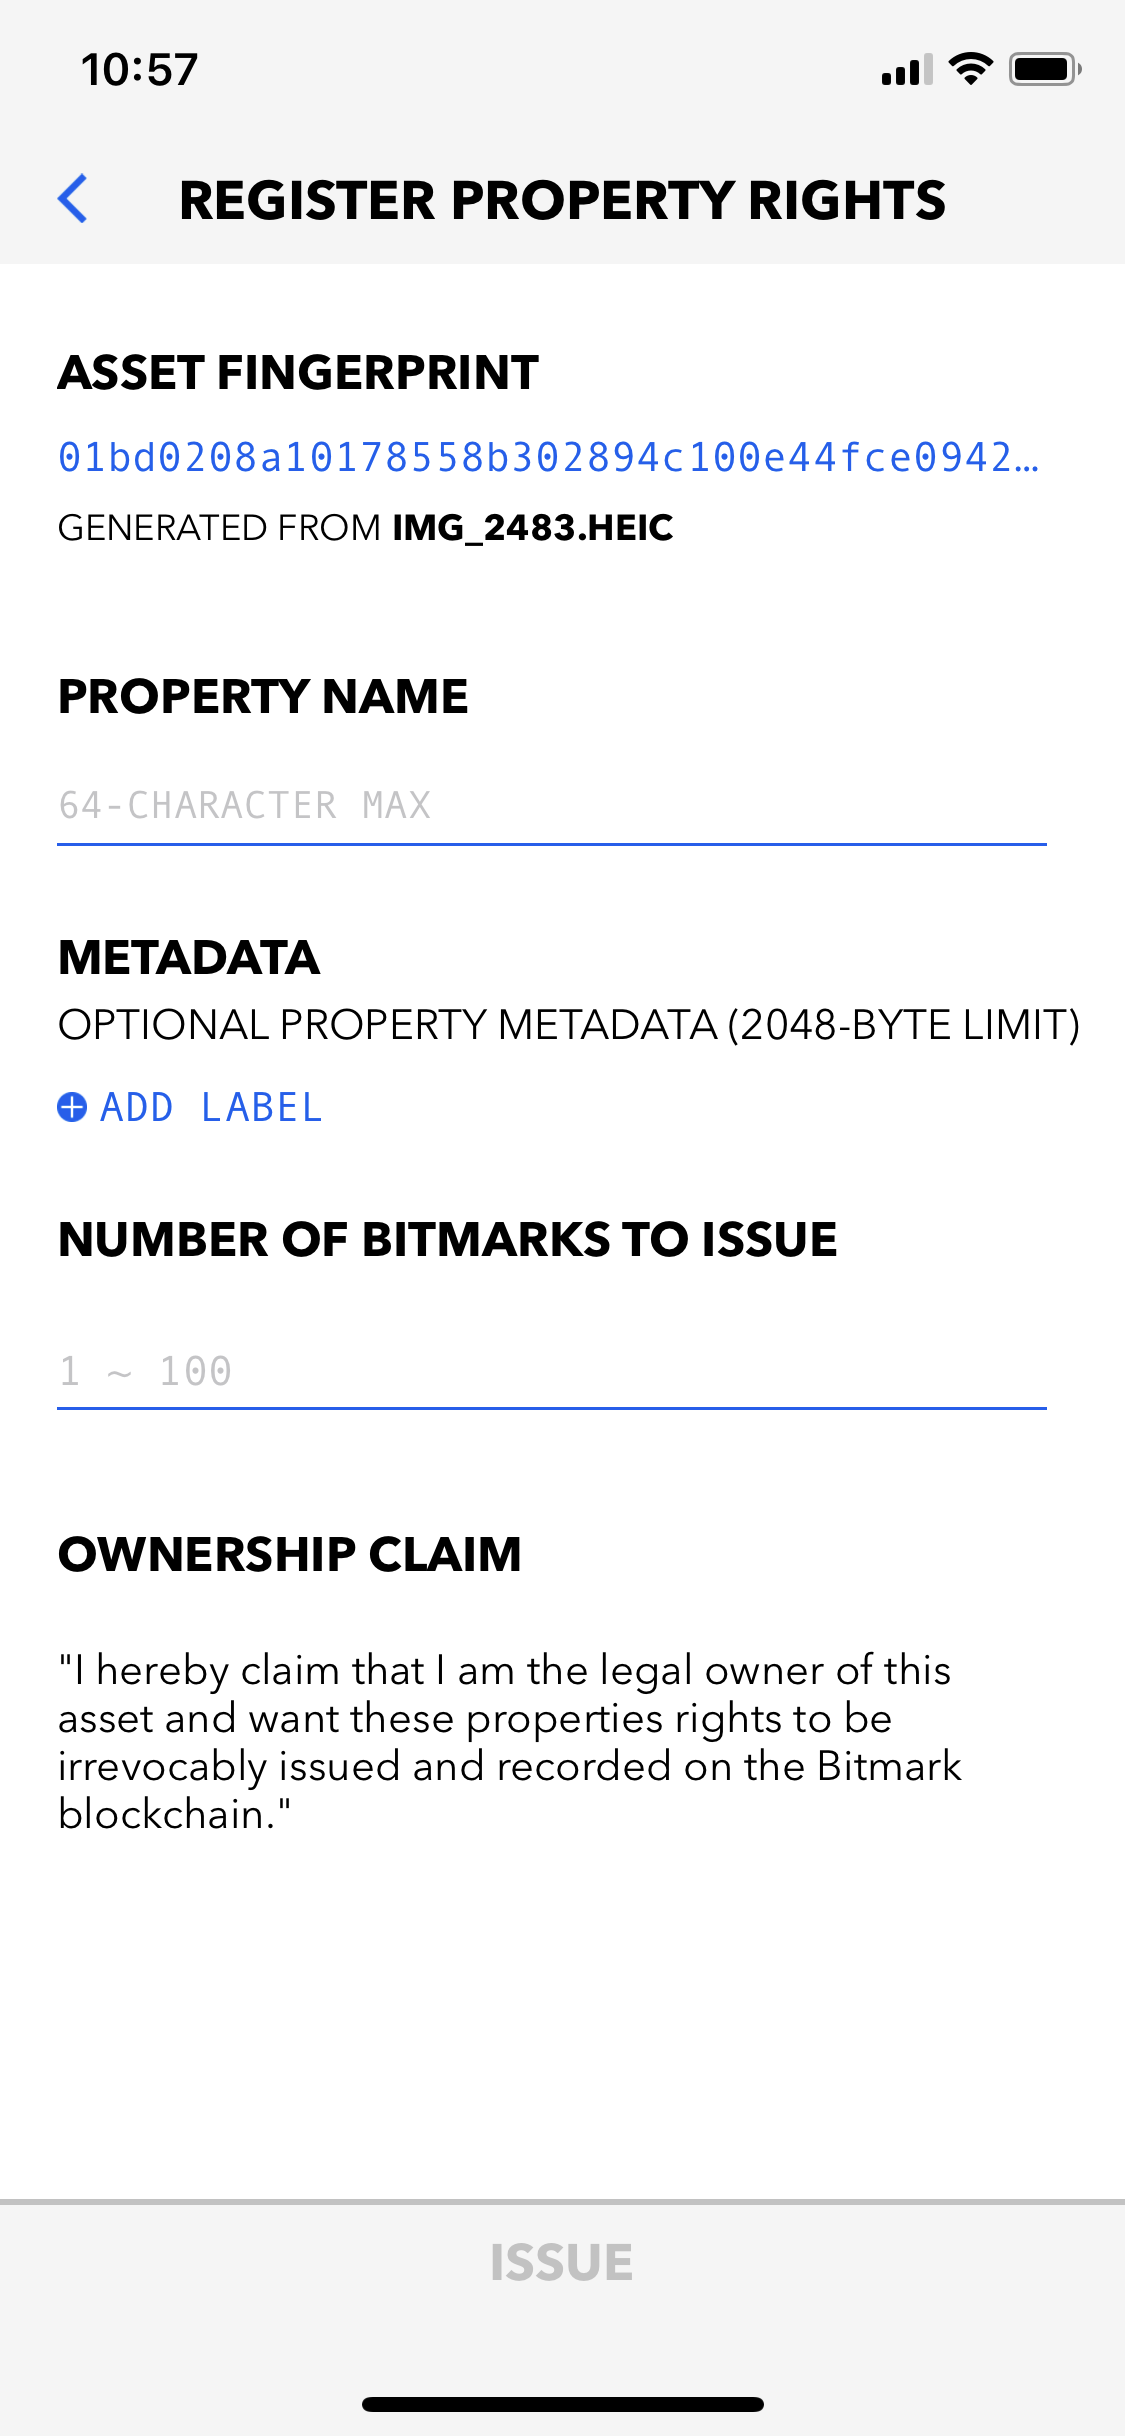 Register Property Rights screen